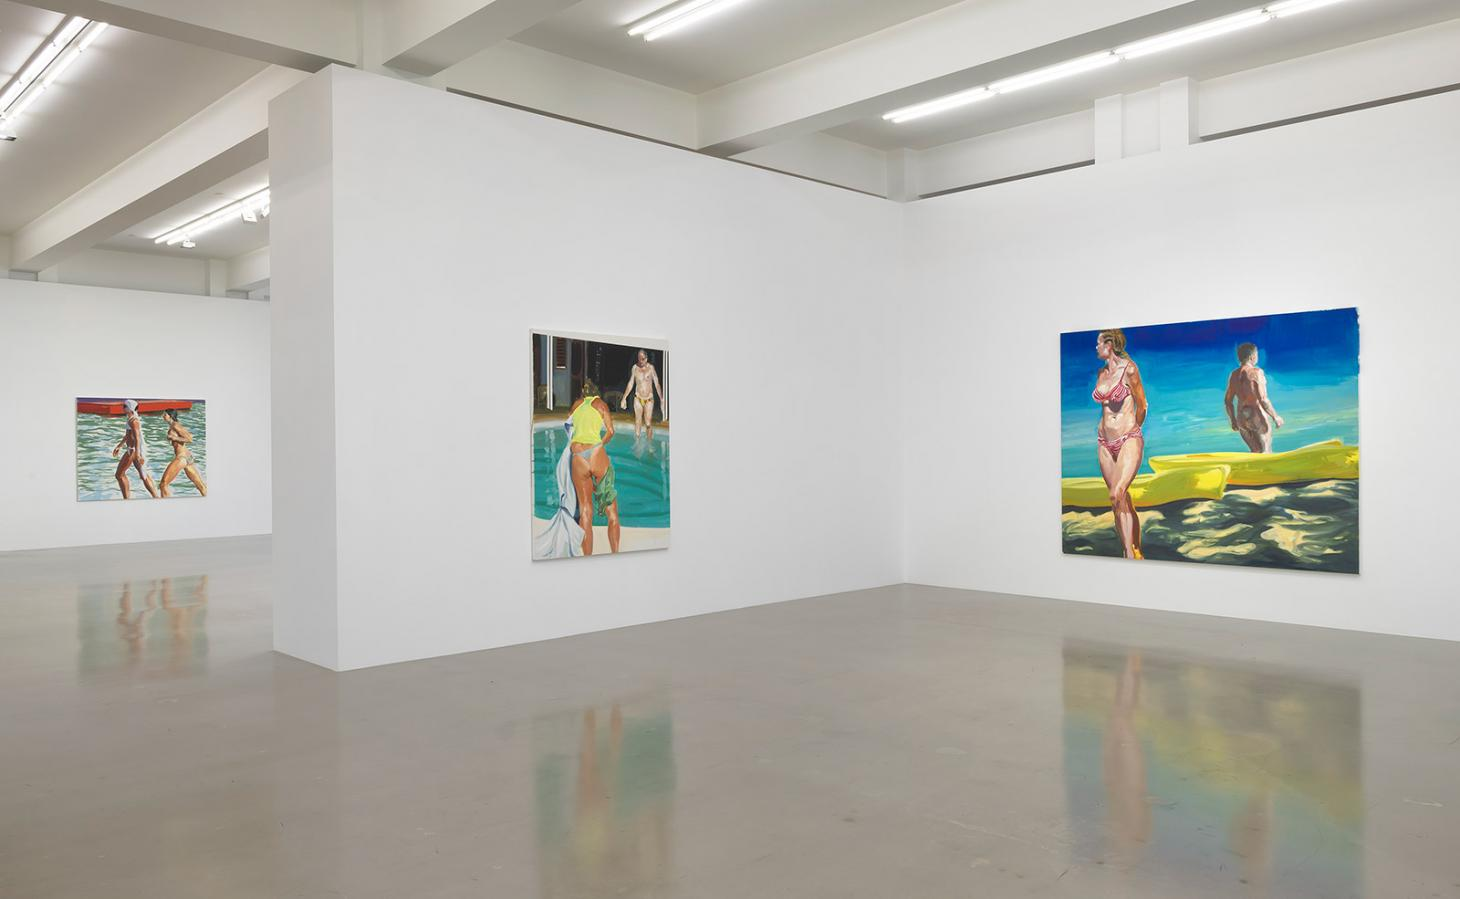 'Complications From an Already Unfulfilled Life', Sprüth Magers, Los Angeles